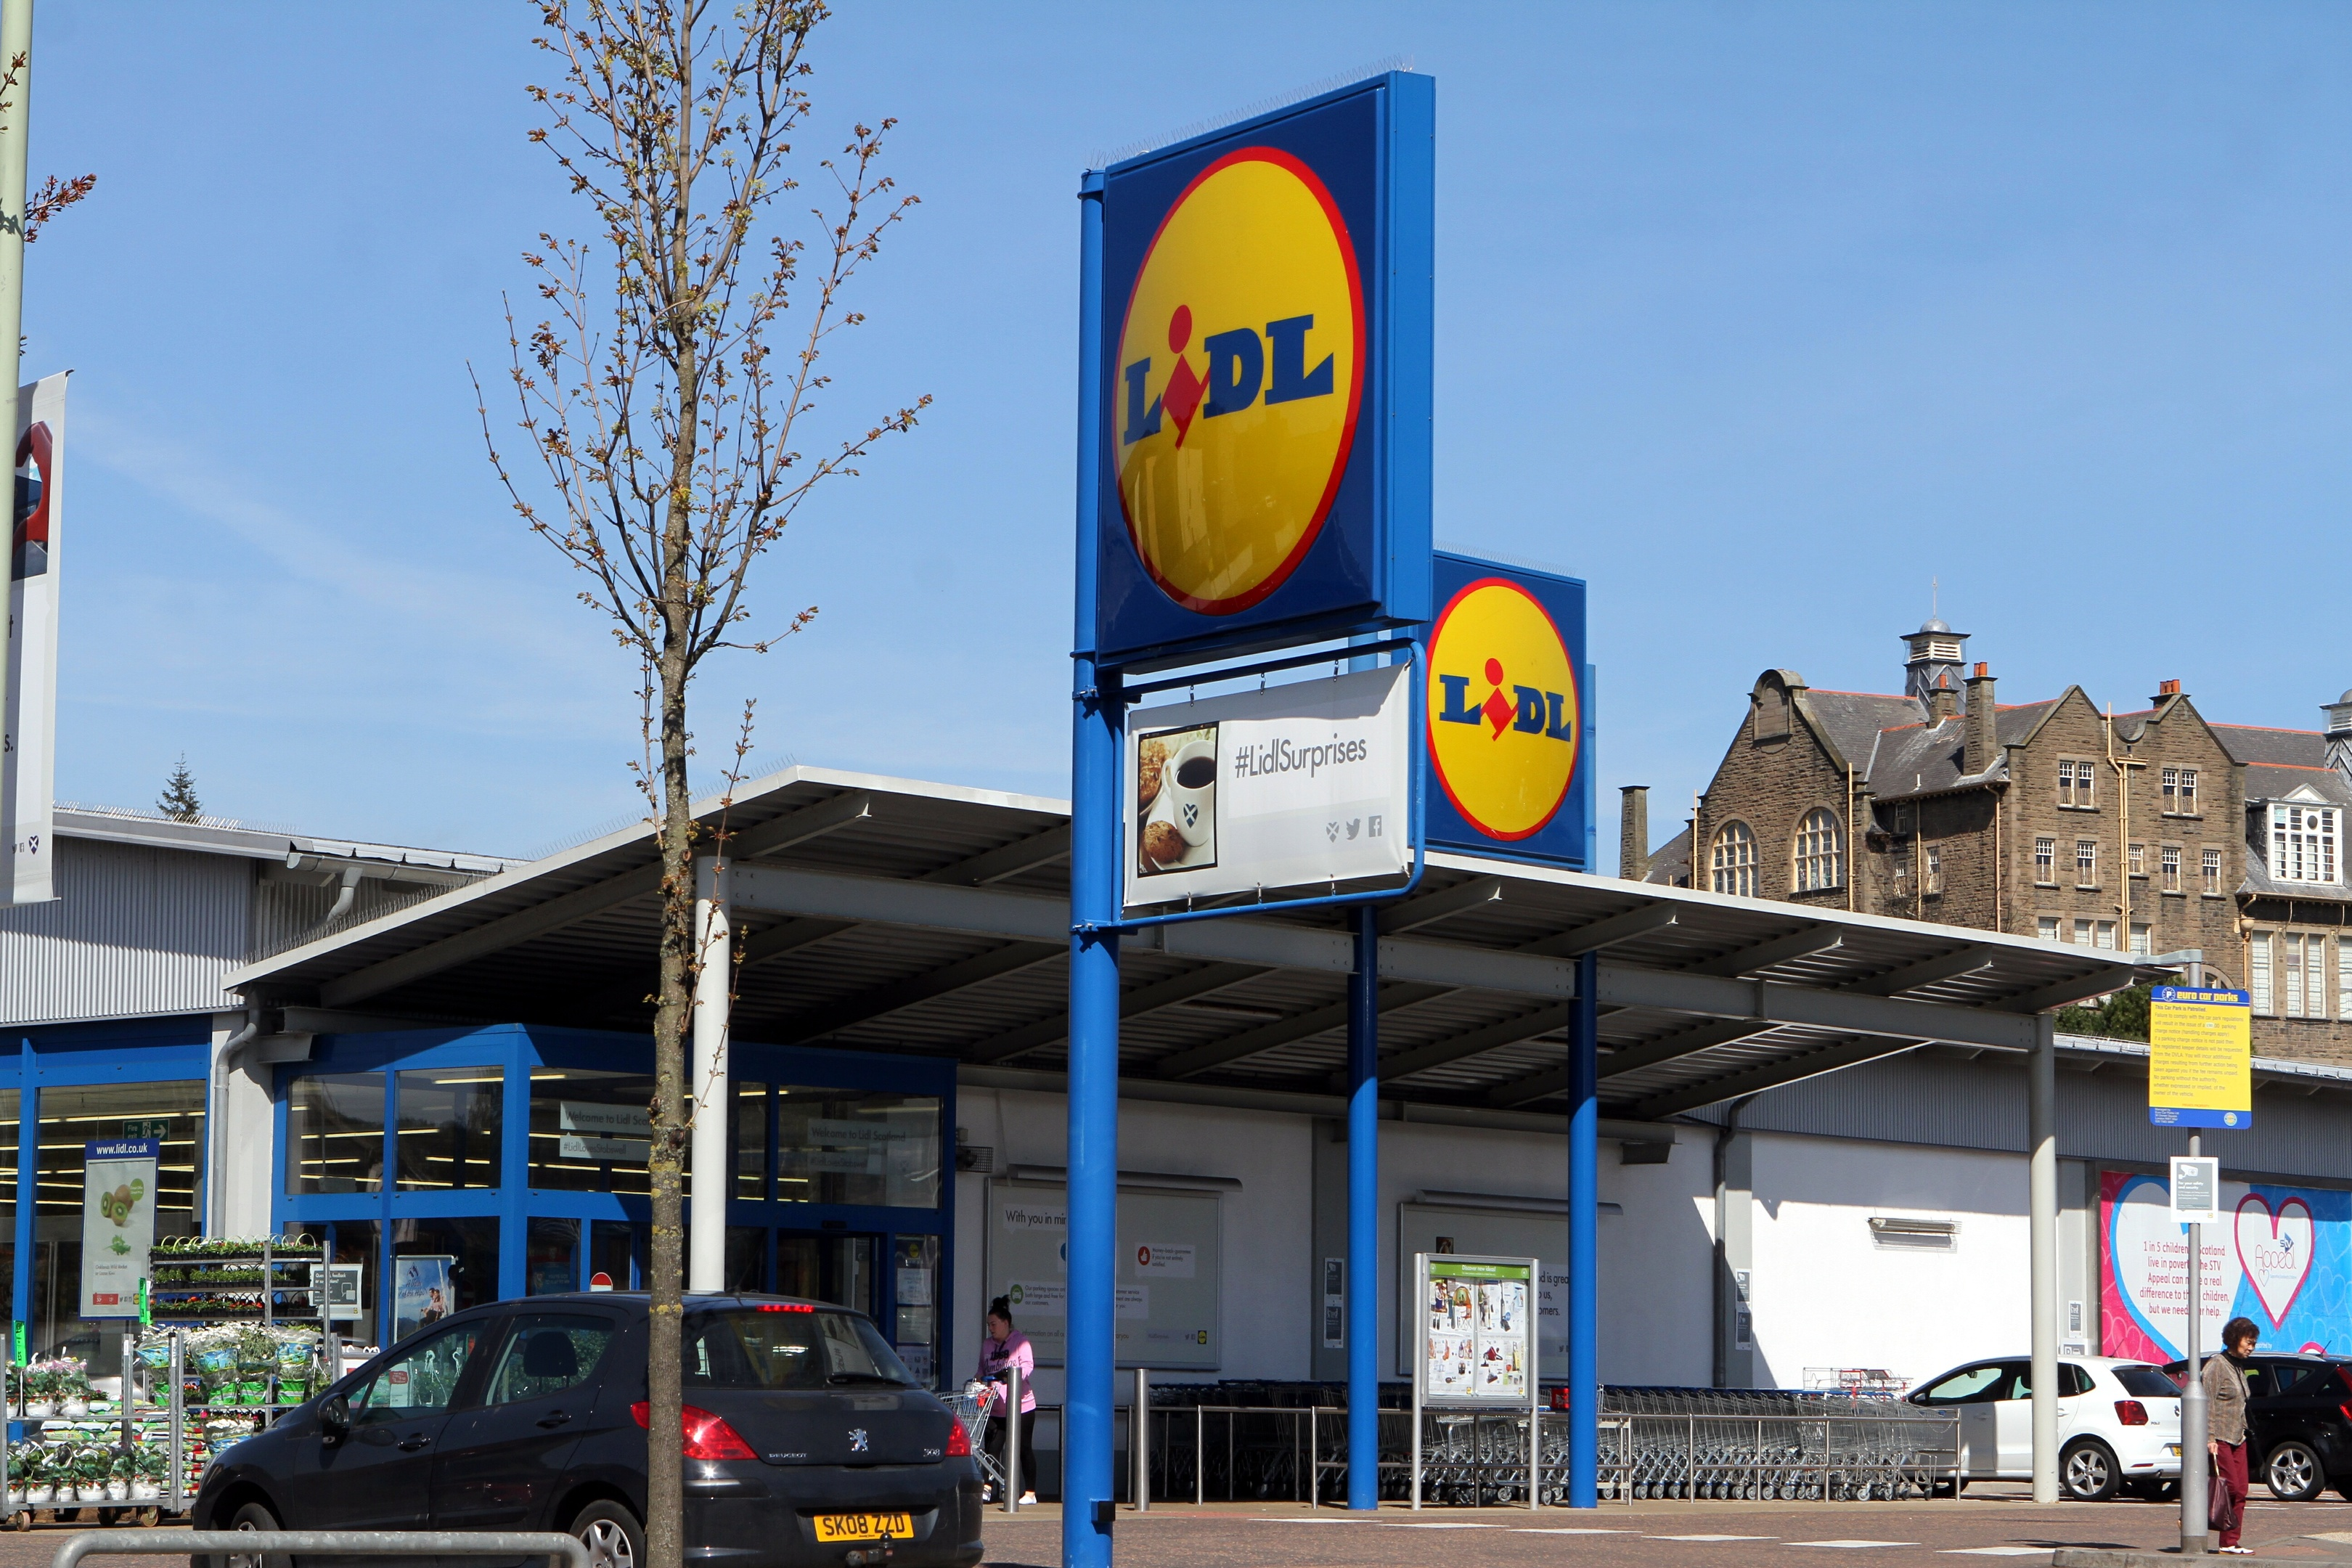 The Lidl store on Dura Street in Dundee. An application has been submitted to have it extended, which has been recommended for approval.